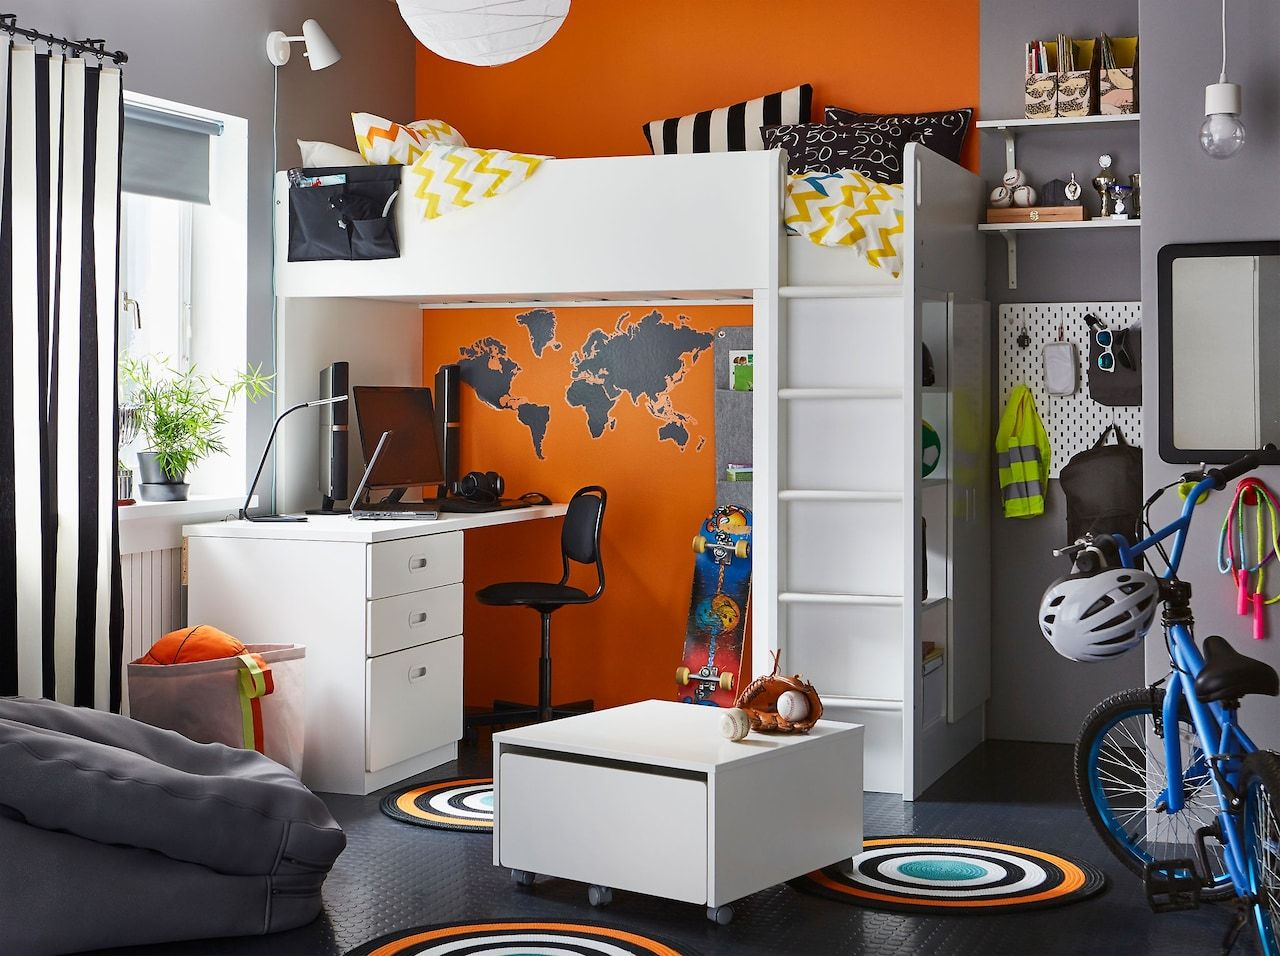 A Black Grey Orange And White Bedroom For A Child In Their Pre